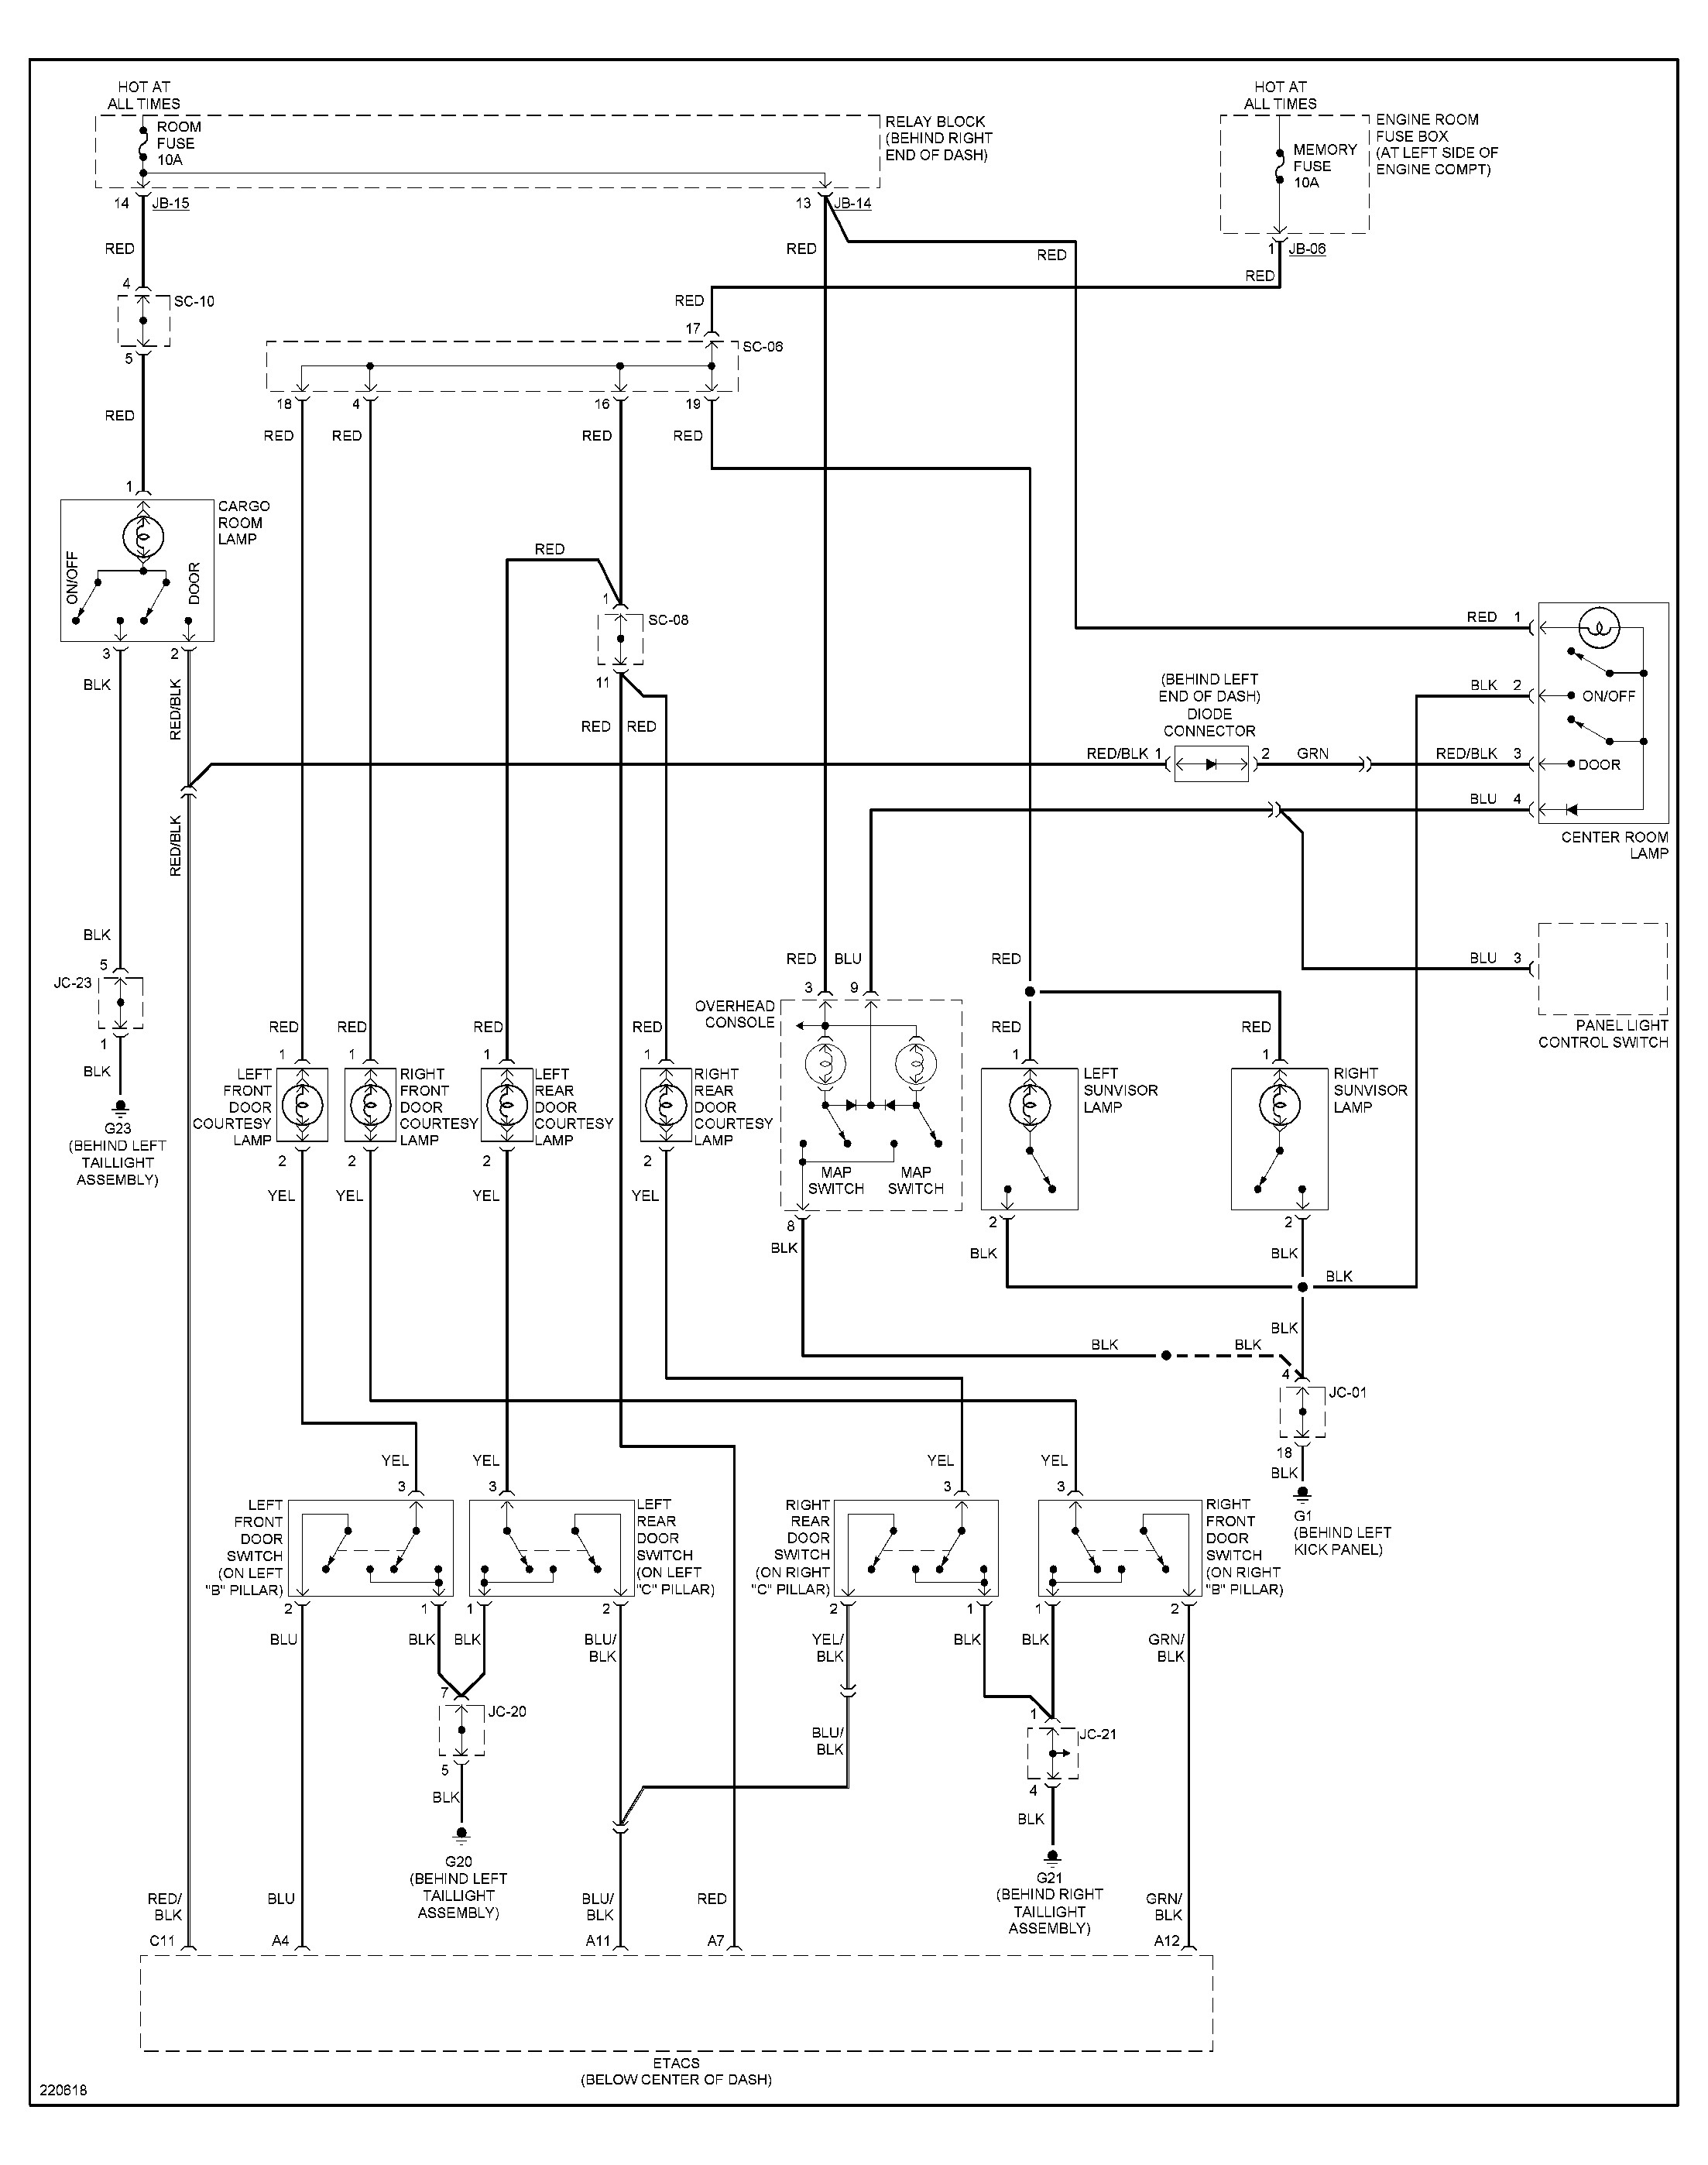 Diagram In Pictures Database 2012 Kia Soul Wiring Diagram Just Download Or Read Wiring Diagram Diagram Uml Onyxum Com